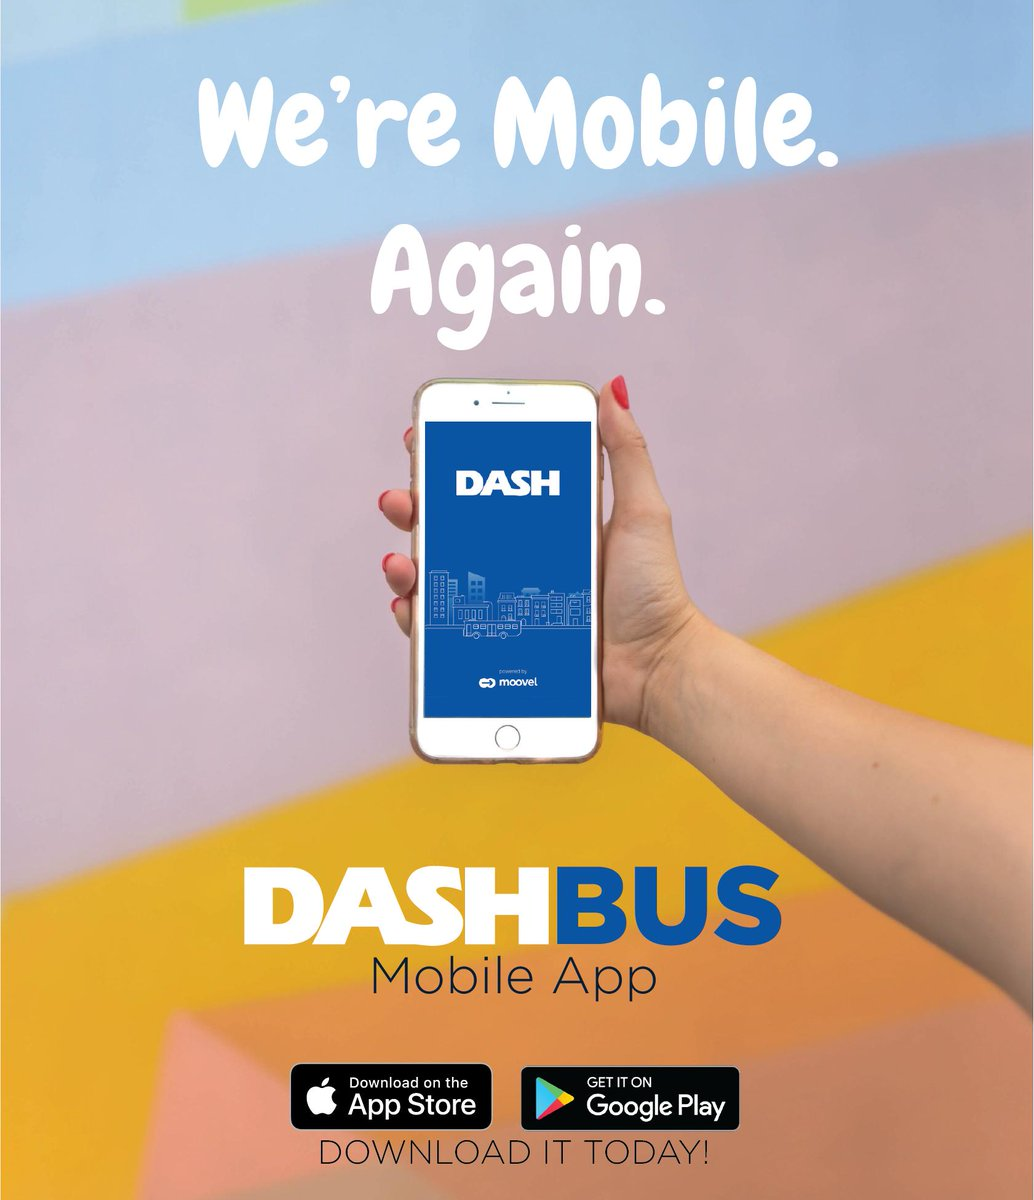 DASH Bus (@DASHBus) | Twitter